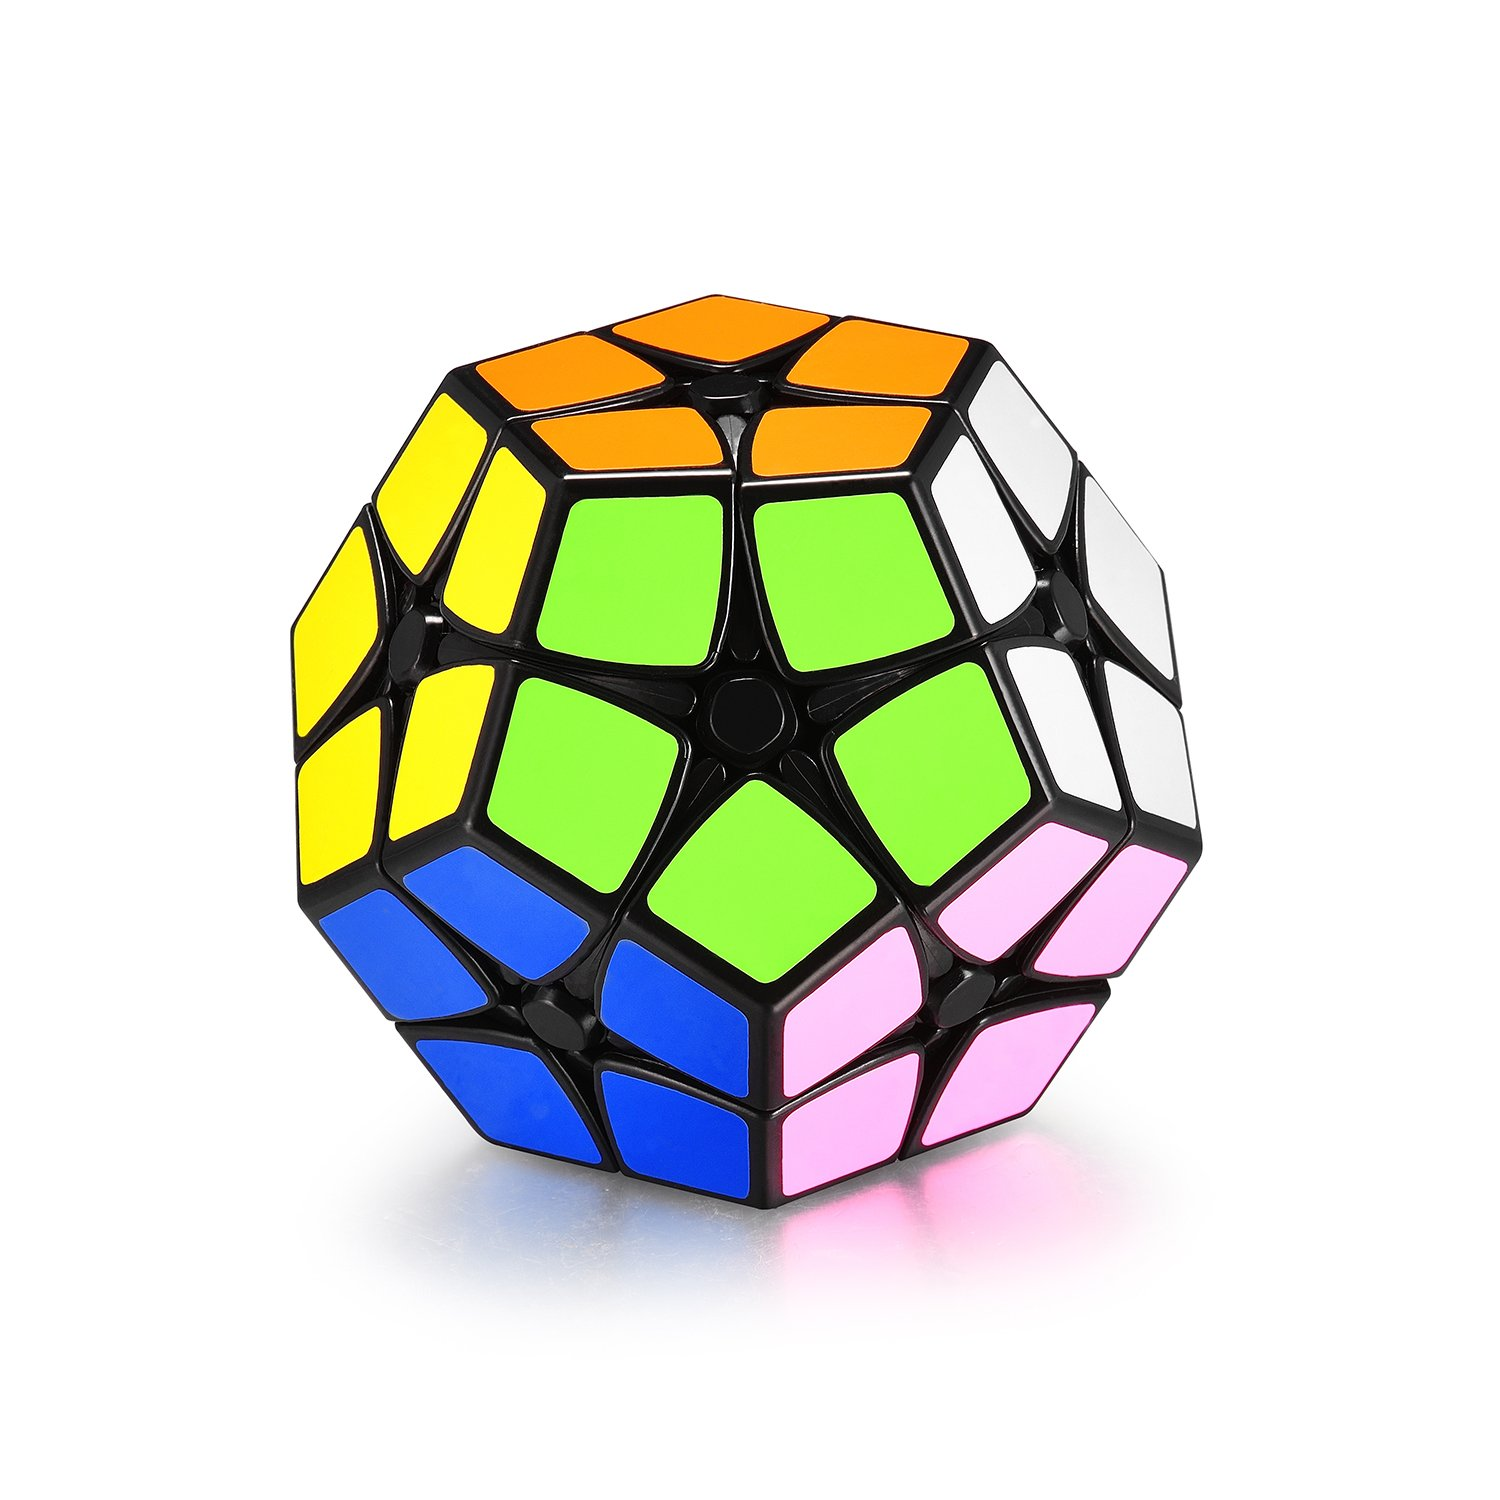 Speed Cube | 2x2 Stickers Megaminx Cube Puzzle | Smooth Kilominx Brain Teasers toys | 12 Colors Stickers Dodecahedron Magic Cube | Black